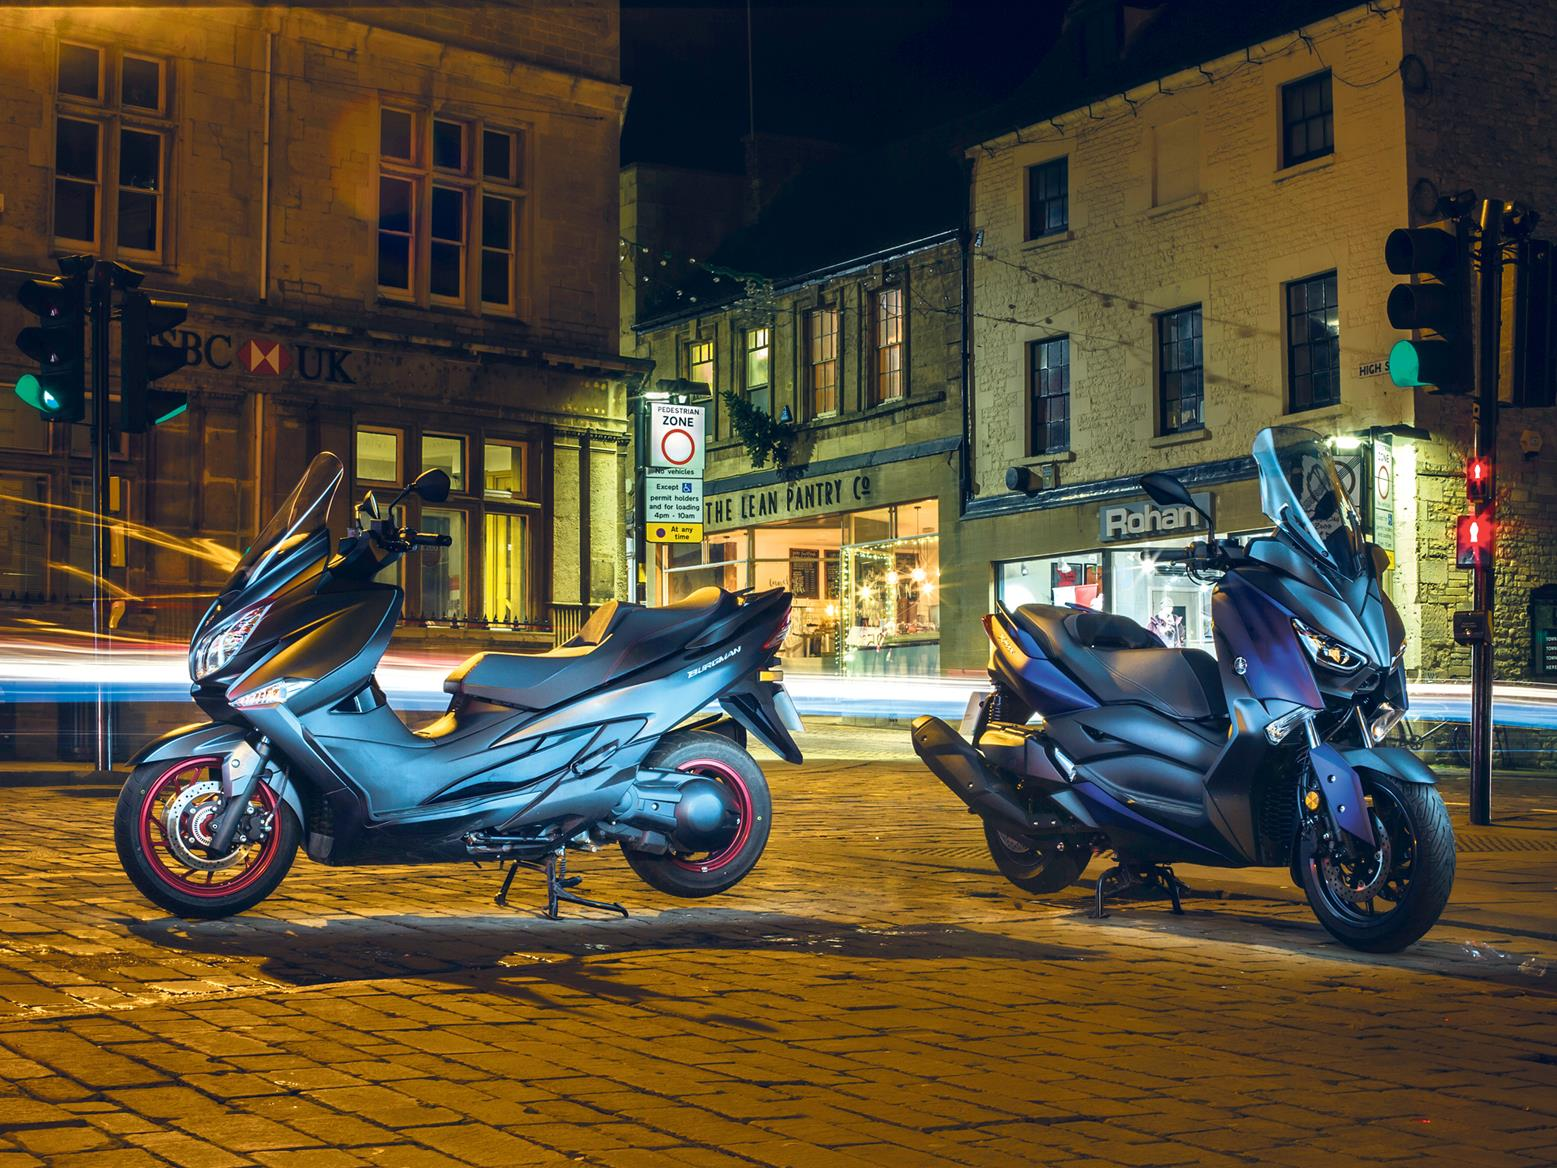 Be very careful when securing your motorcycle when riding at night. Theft is always a risk...